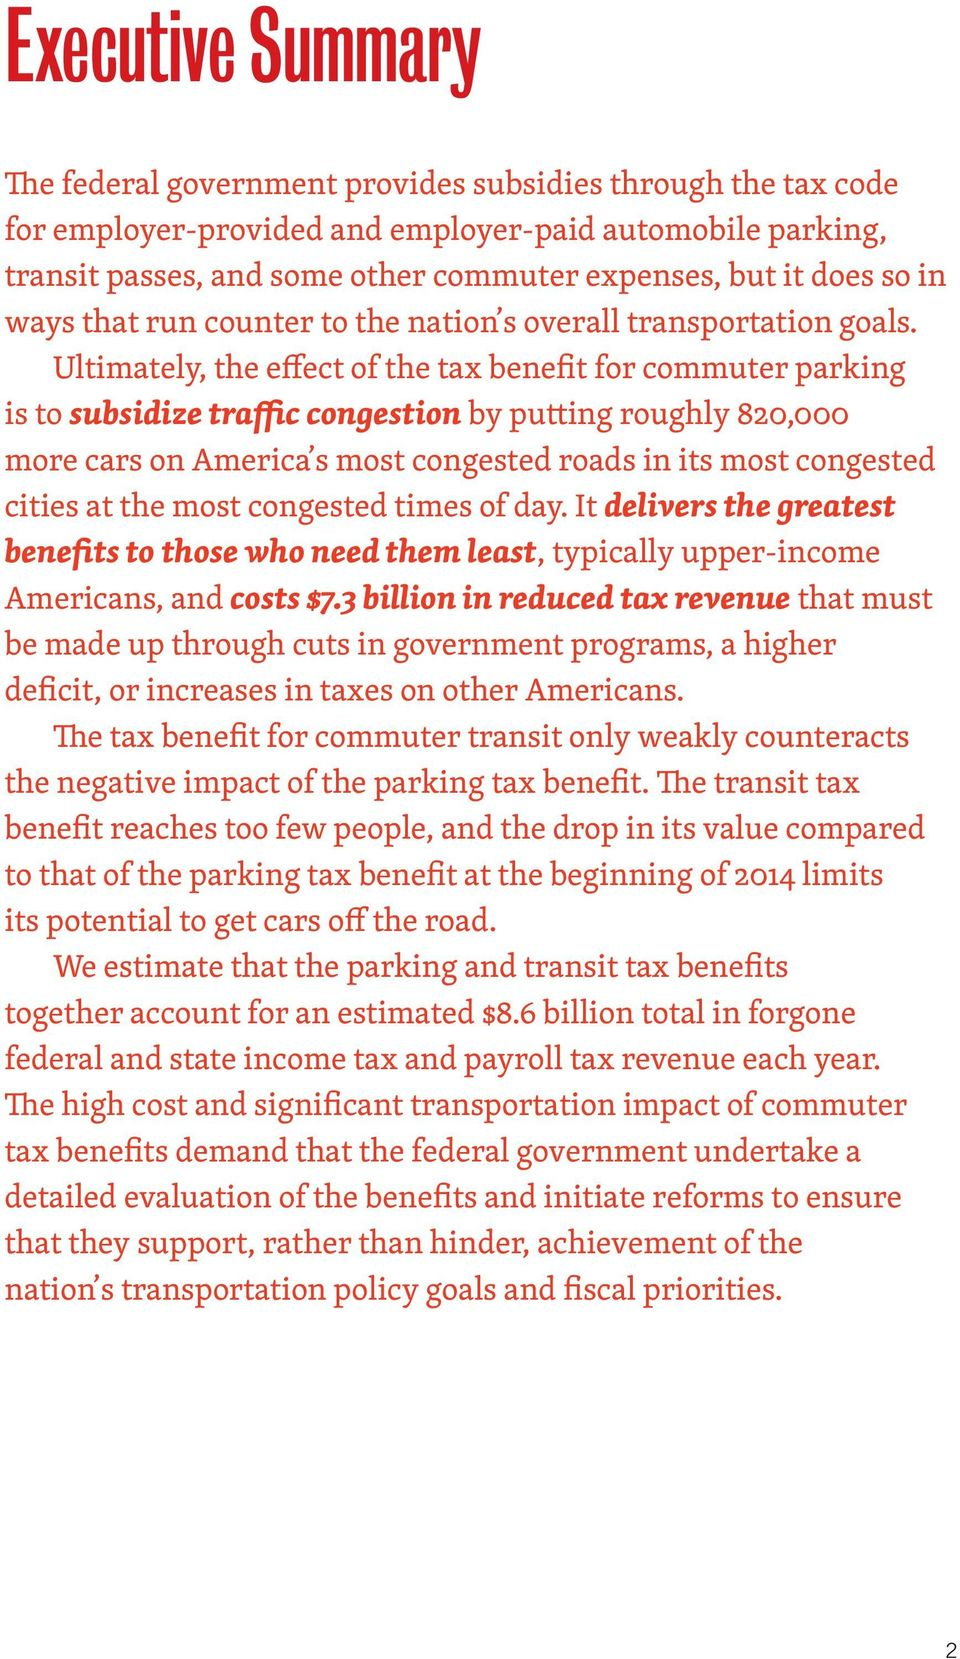 Ultimately, the effect of the tax benefit for commuter parking is to subsidize traffic congestion by putting roughly 820,000 more cars on America s most congested roads in its most congested cities